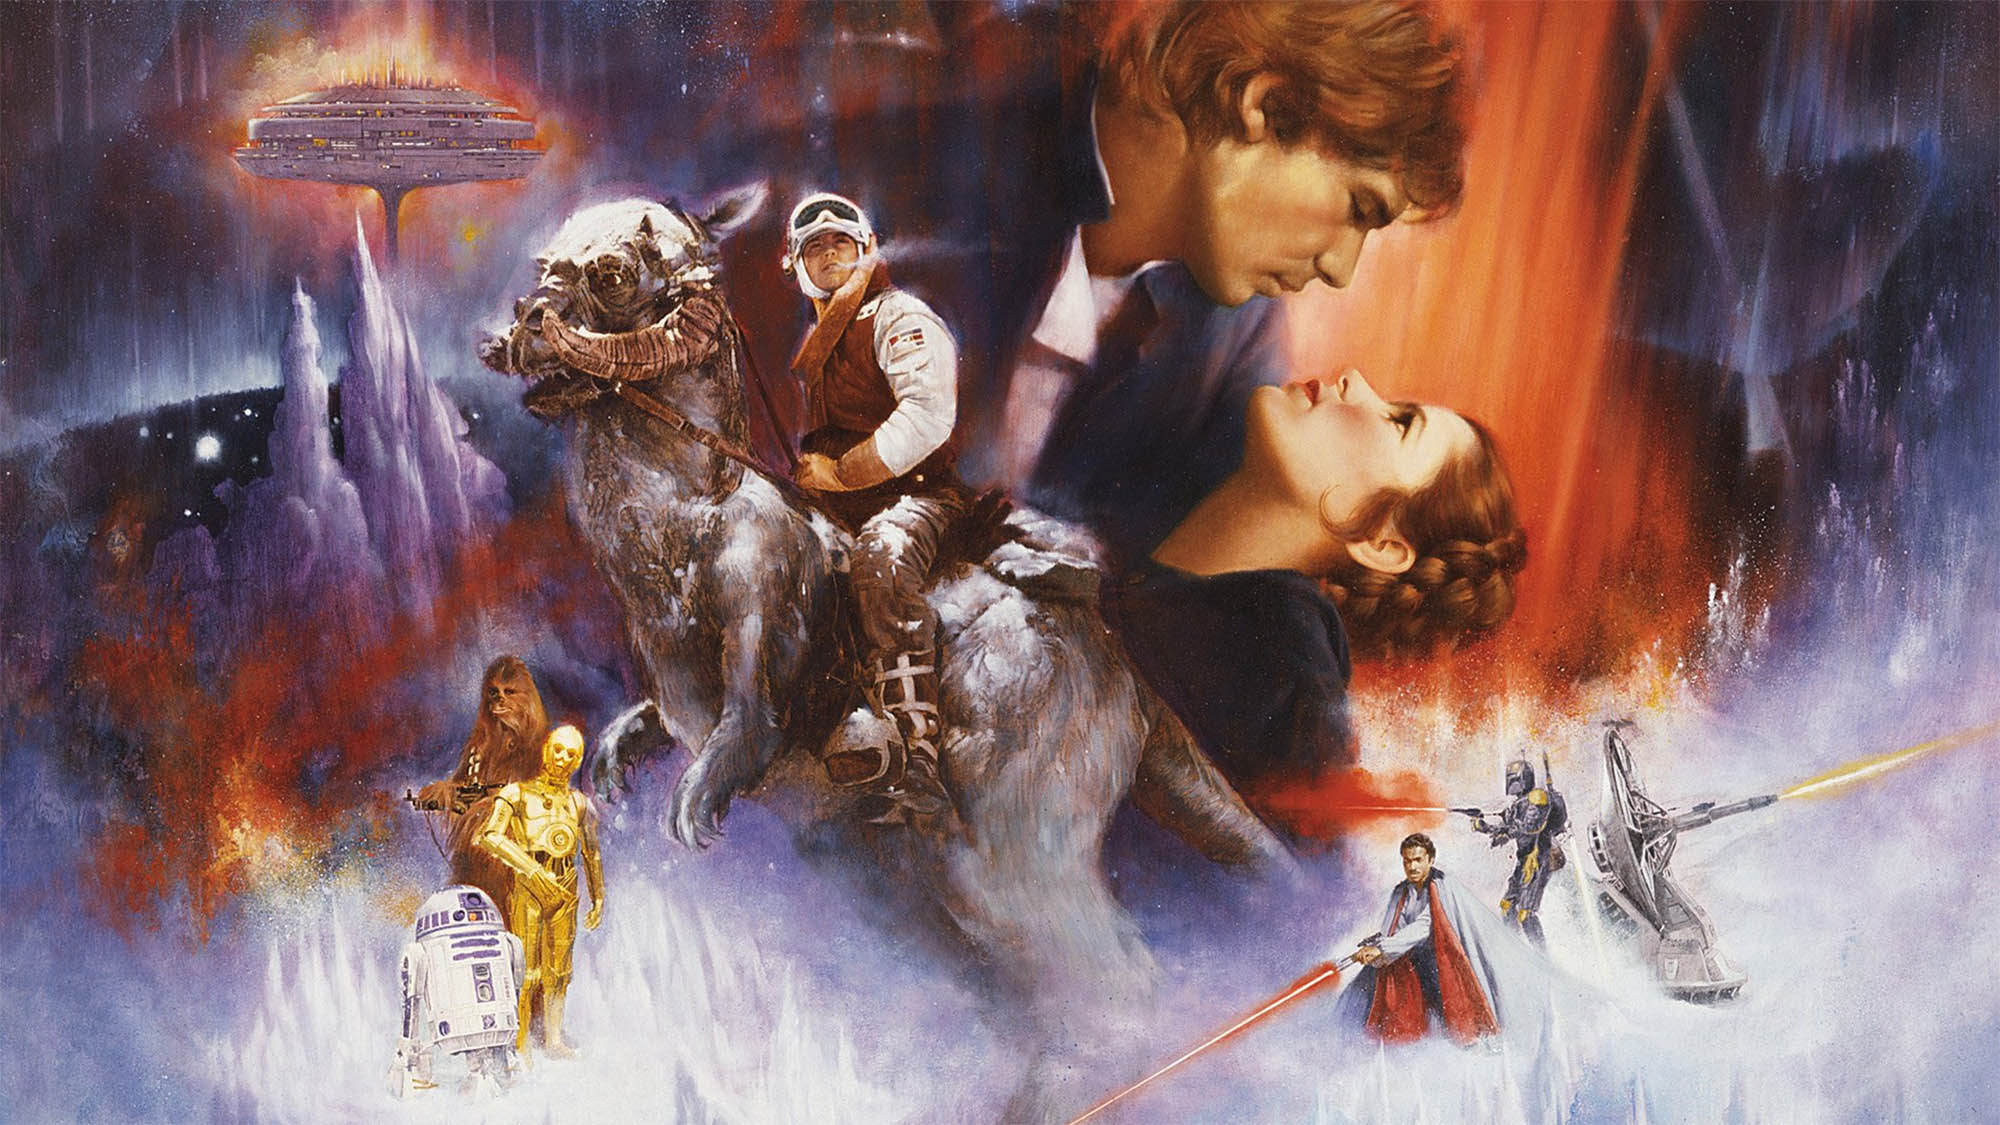 This week is kind of a big deal for 'Star Wars'. Not only does it mark the 38th anniversary of 'The Empire Strikes Back' (released May 21, 1980) and the 41st anniversary of 'A New Hope' (released May 25, 1977), but May 25 also marks the highly anticipated release of 'Solo: A Star Wars Story'.